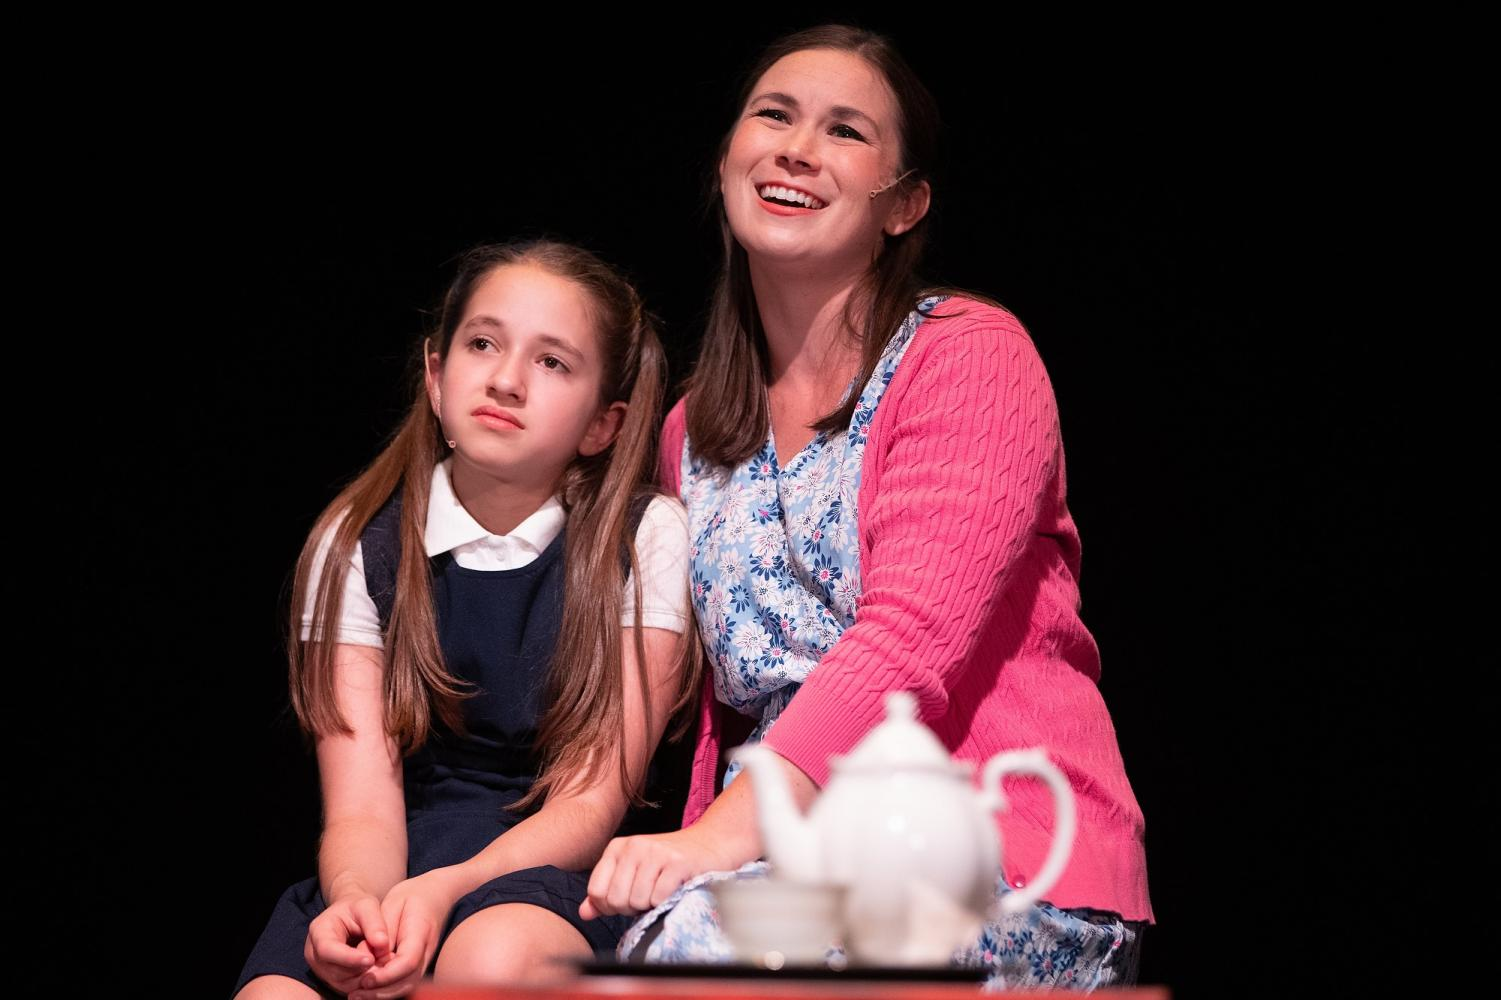 Eliza Marcovitch (left) and Leah Mueller (right) perform in Matilda the Musical.